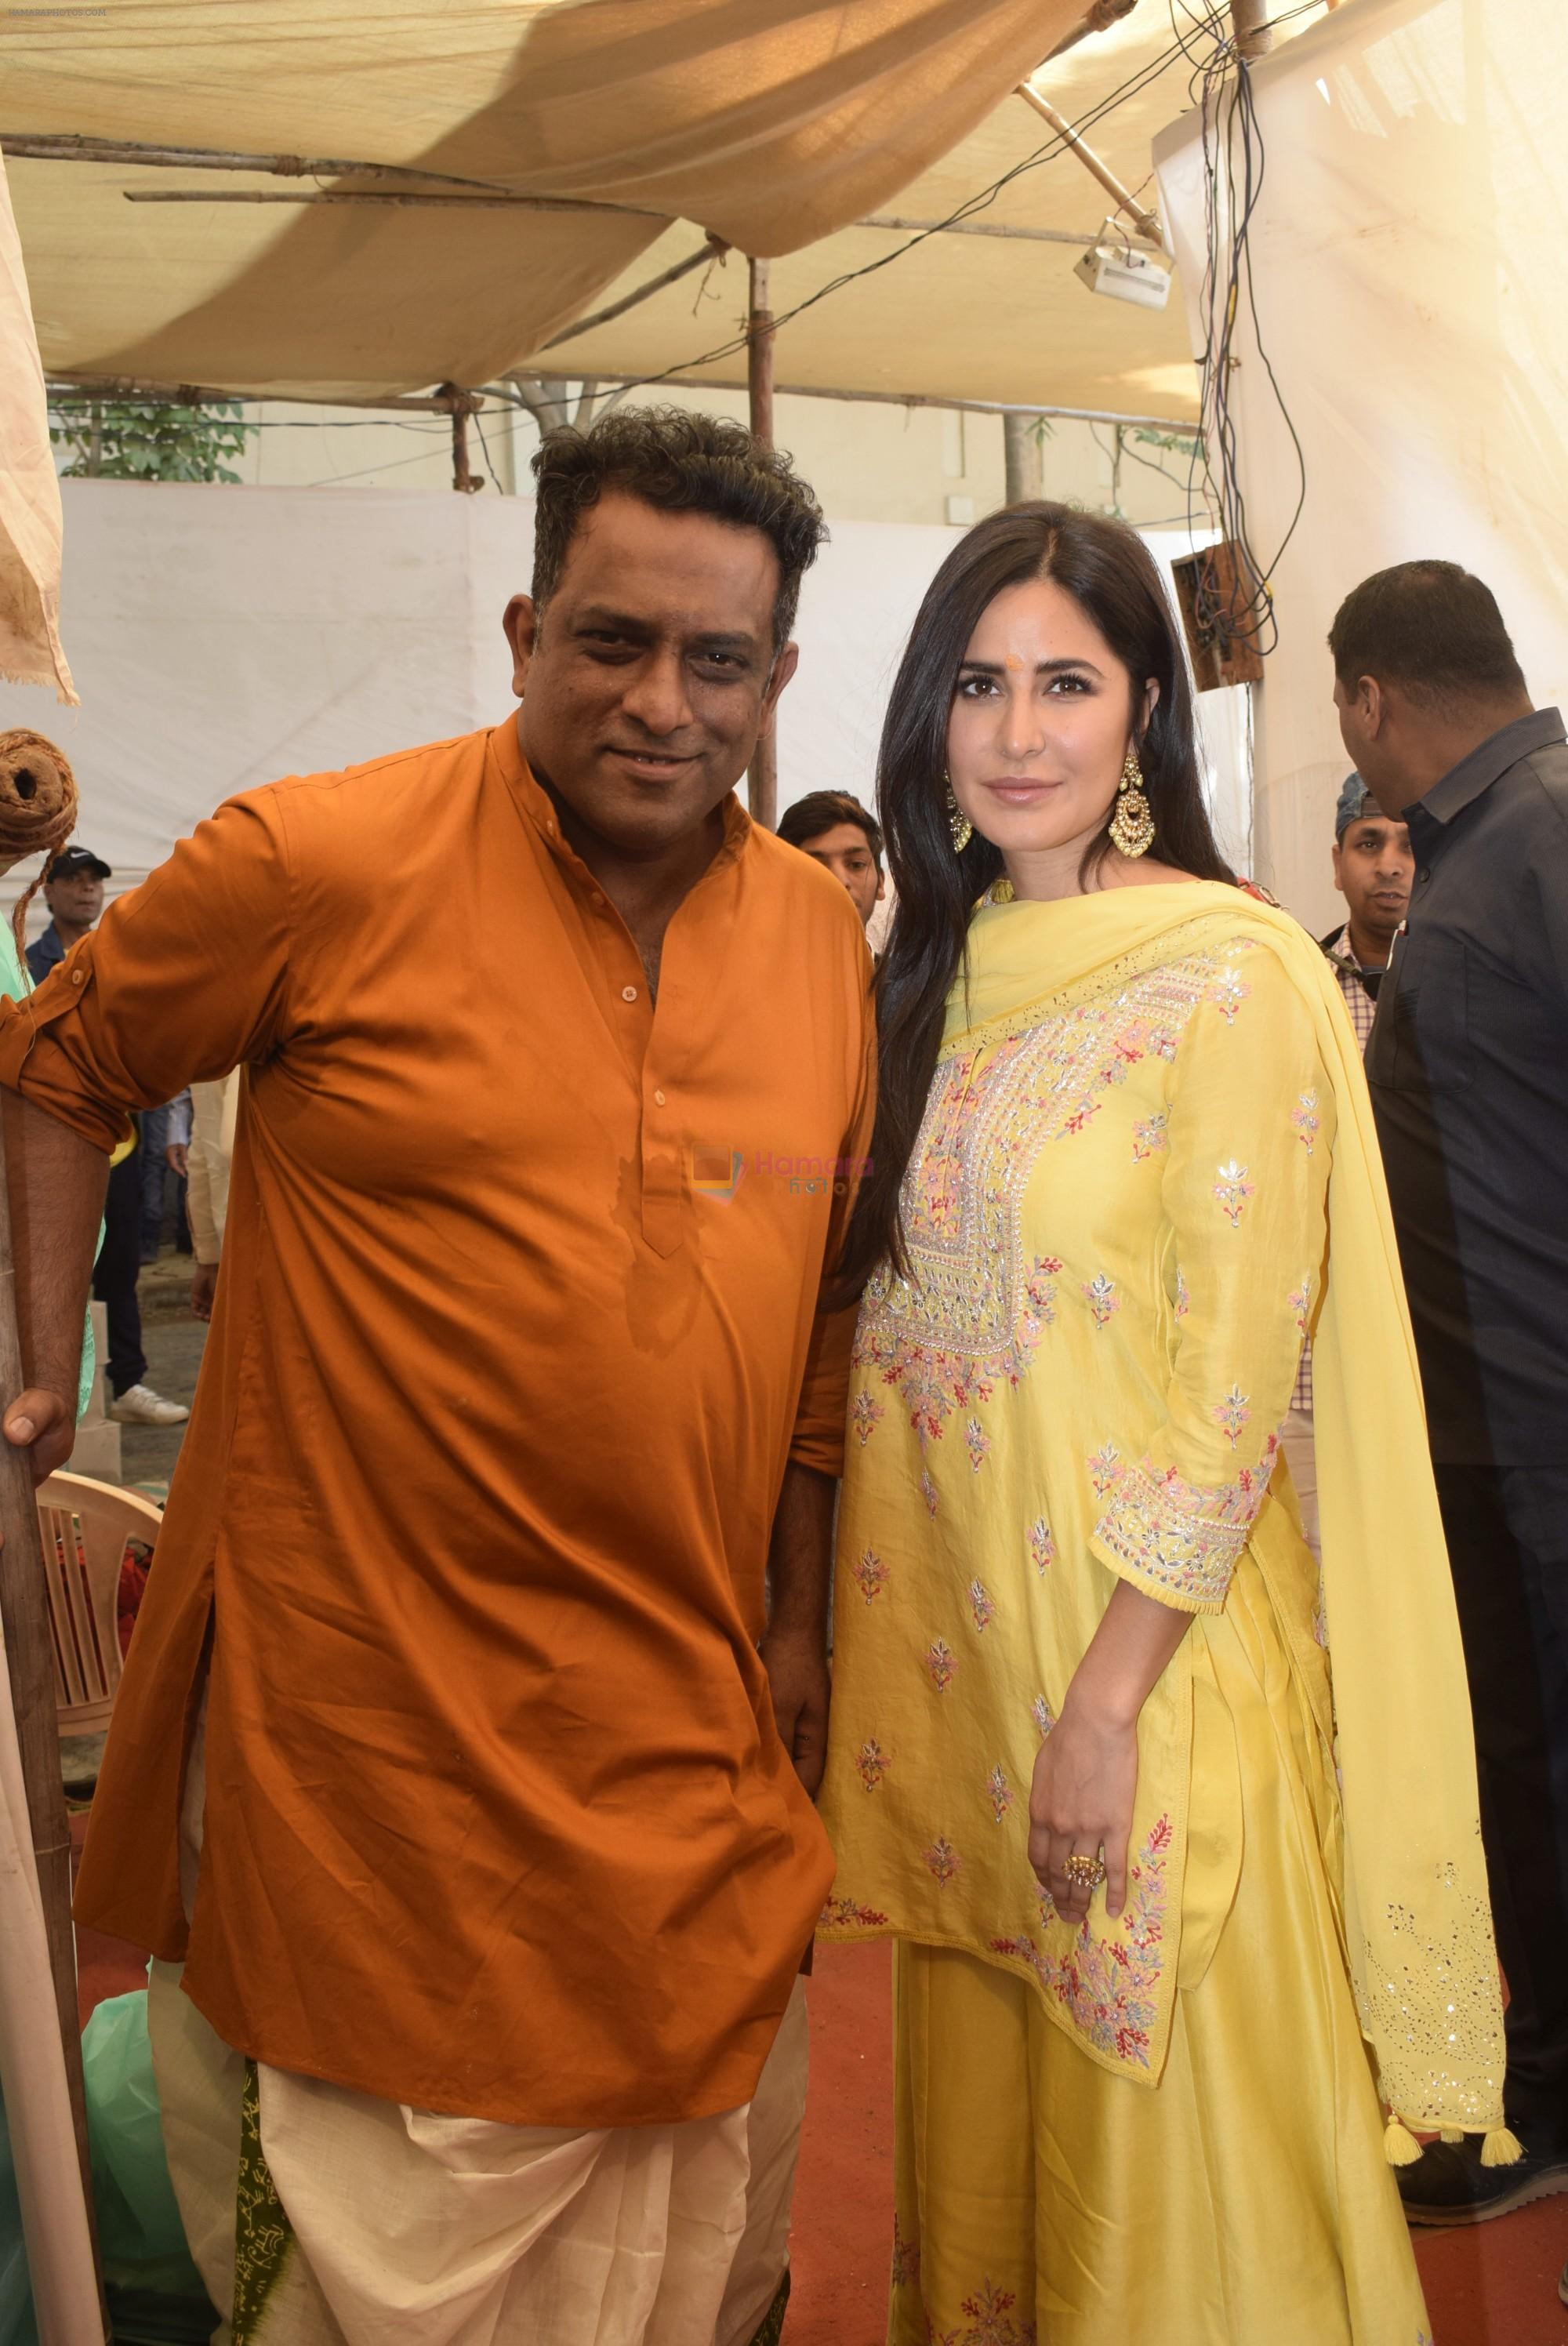 Katrina Kaif at Saraswati pujan at Anurag Basu's house in ...